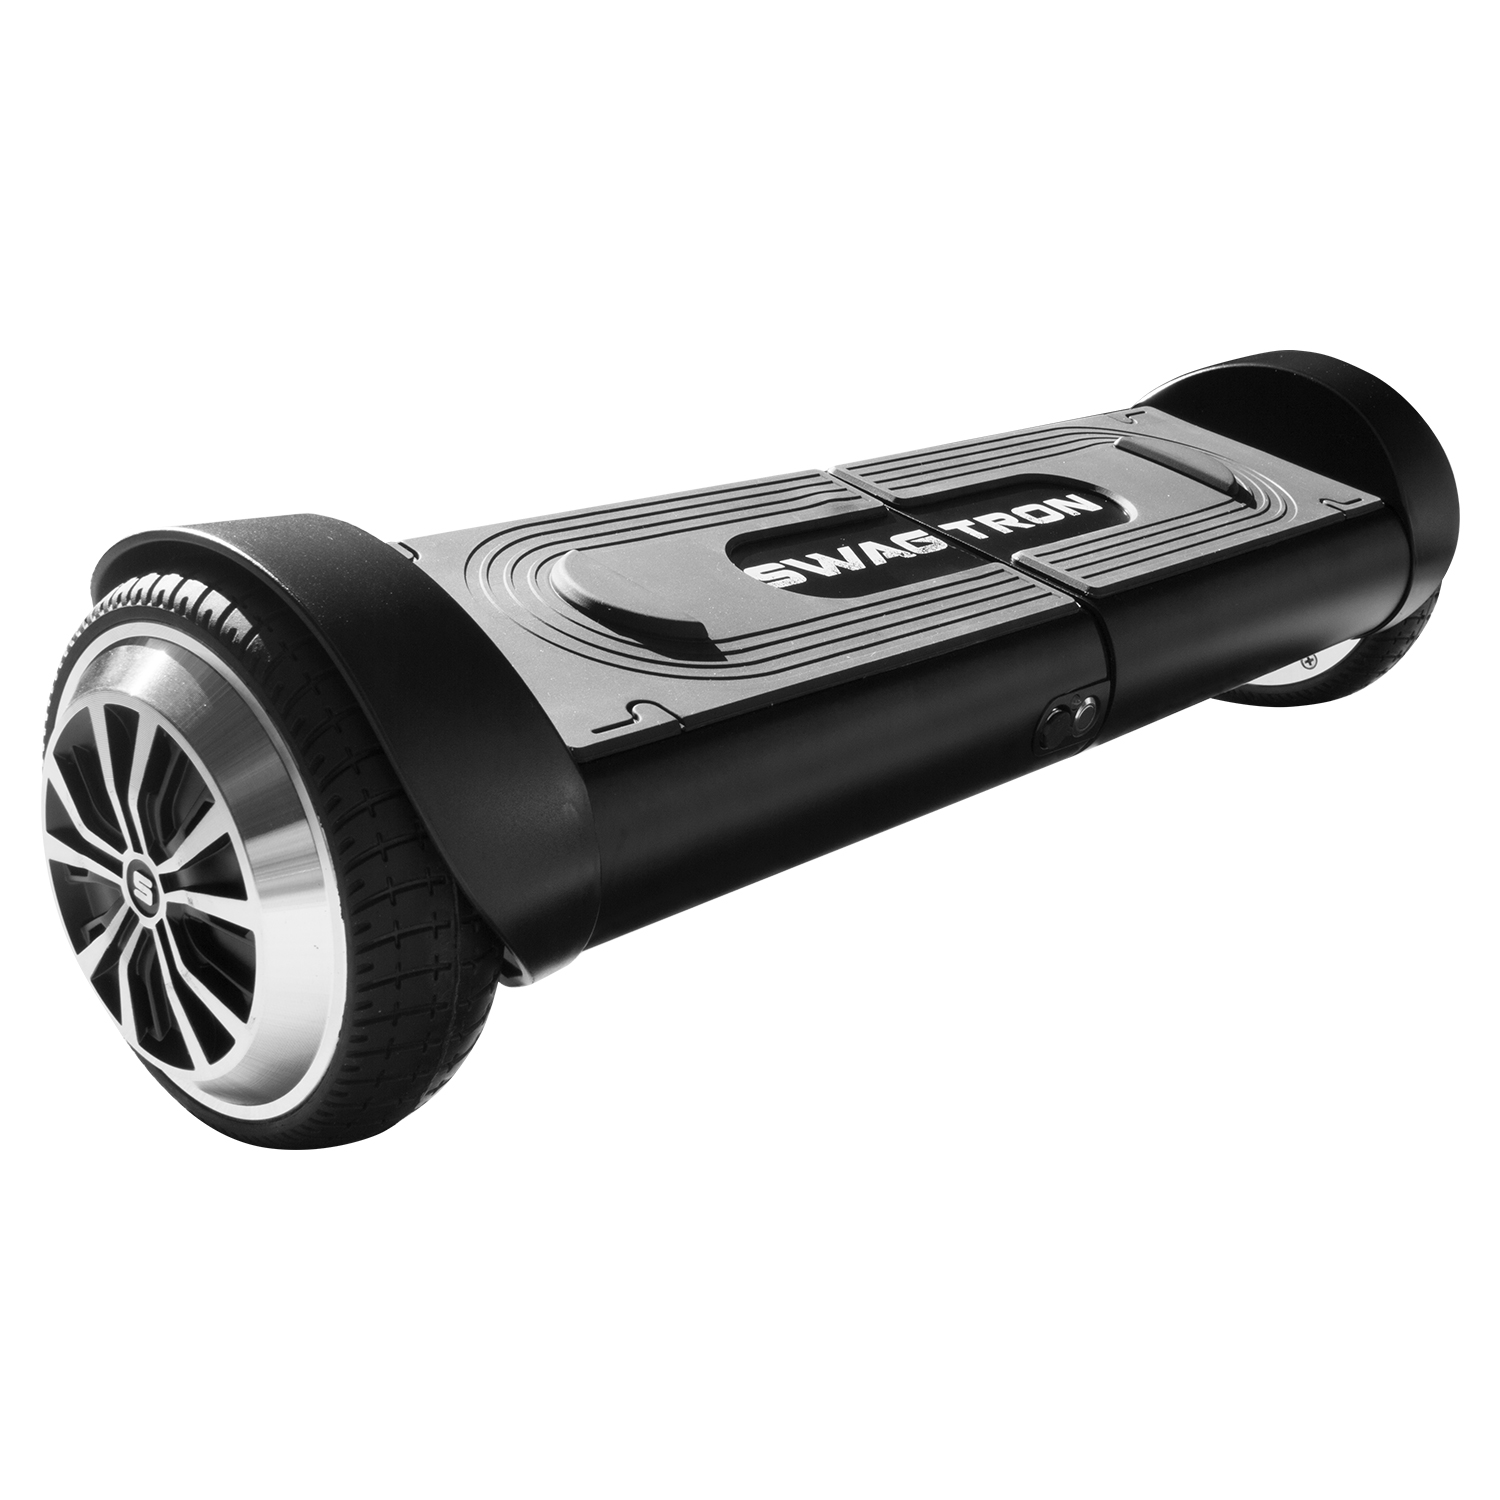 Swagtron Swagboard Duro T8 Self Balancing Hoverboard